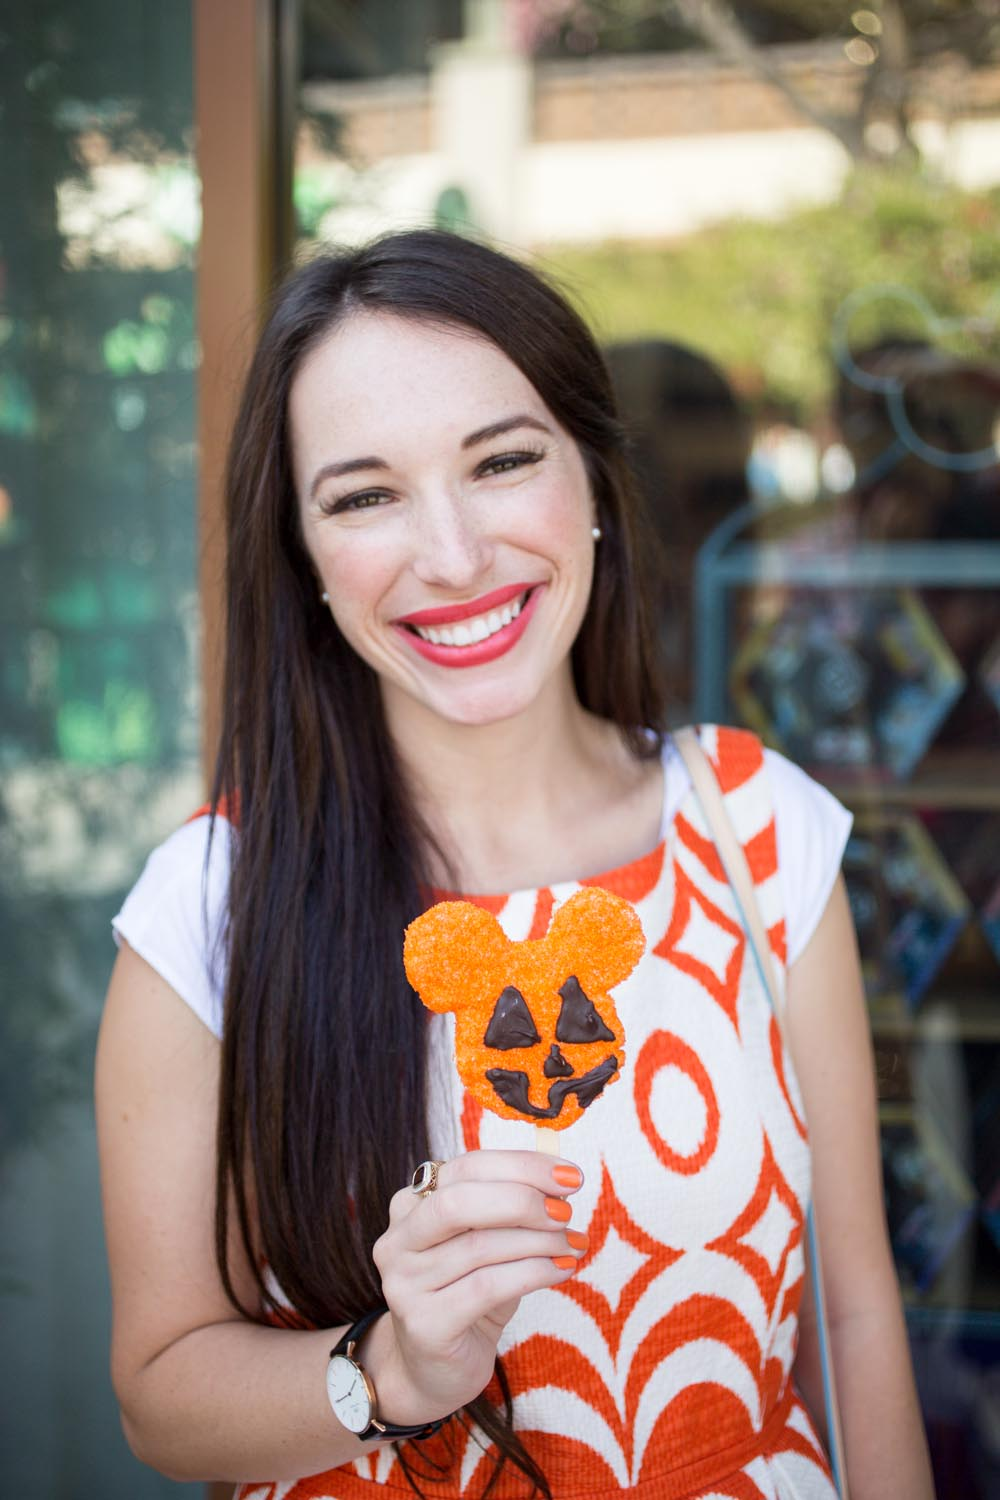 Disneyland Food Guide: For Treat Lovers